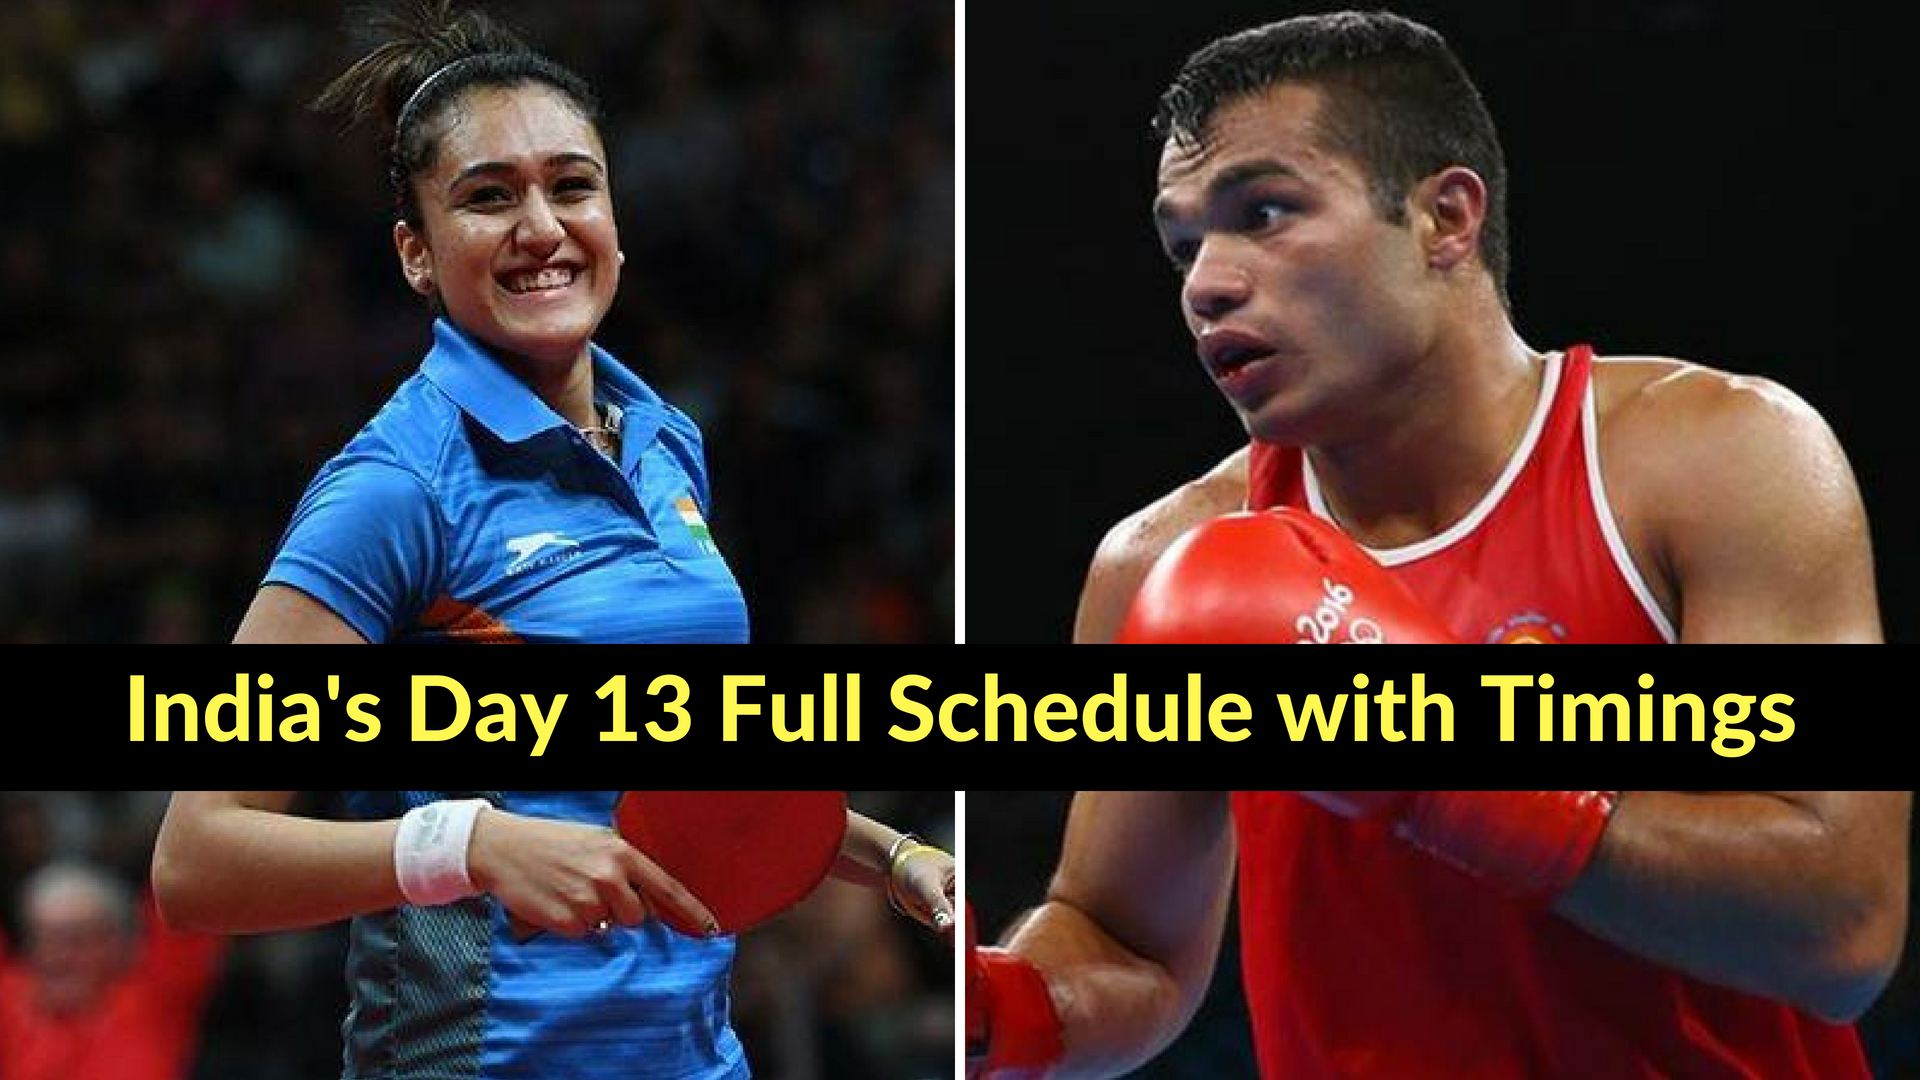 Asian Games 2018: India's Day 13 Full schedule with timings